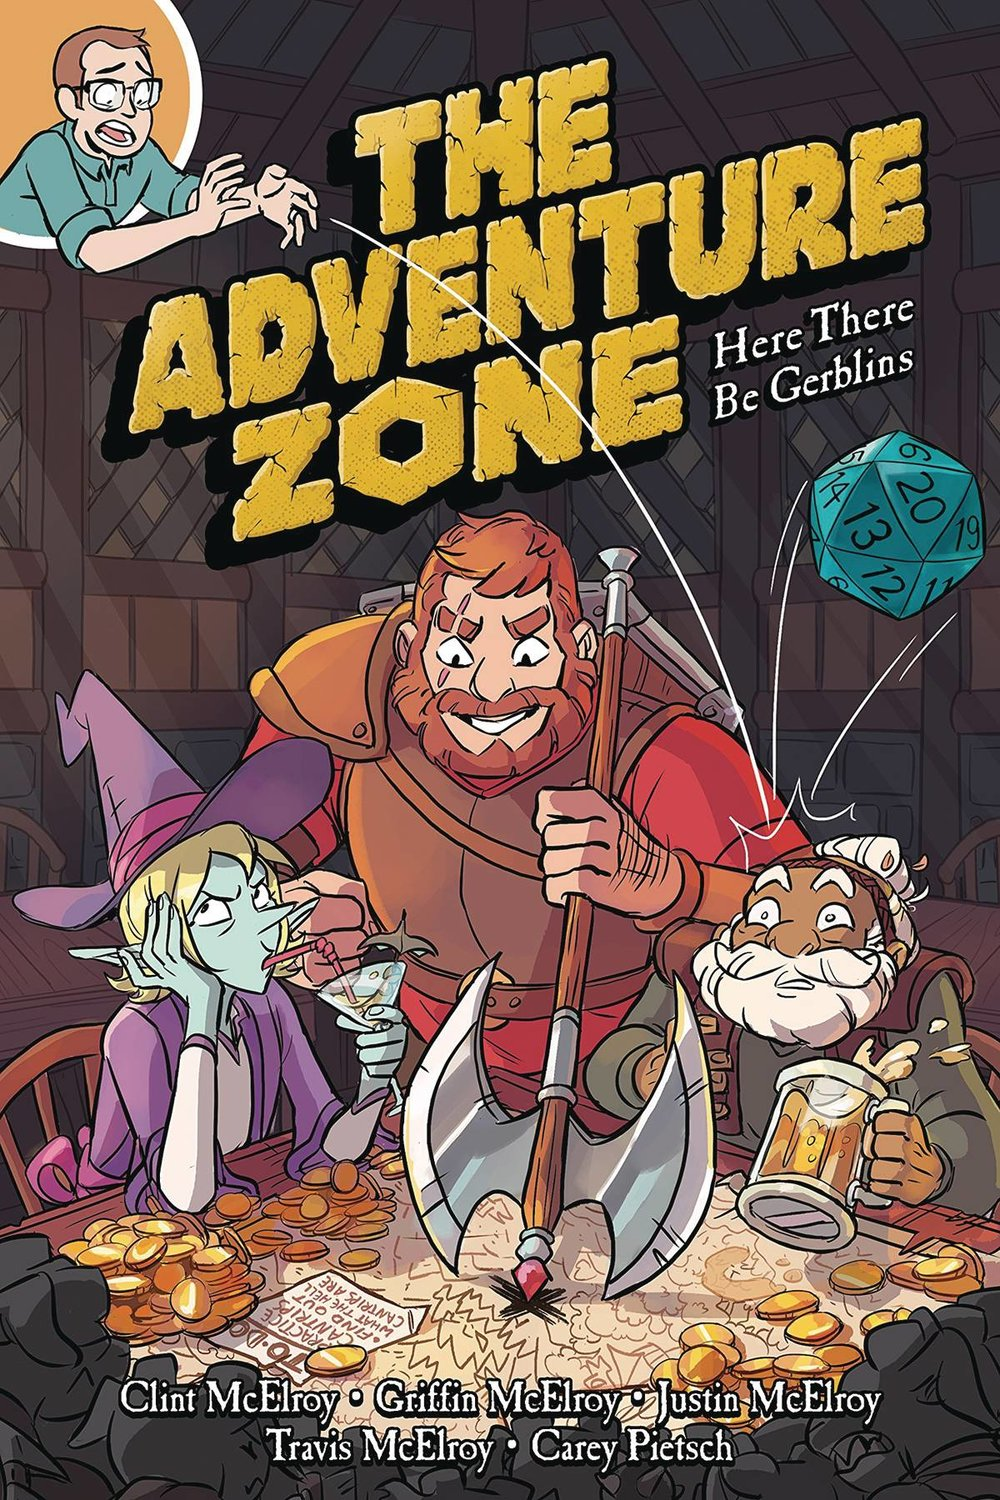 ADVENTURE ZONE GN 1 HERE THERE BE GERBLINS.jpg